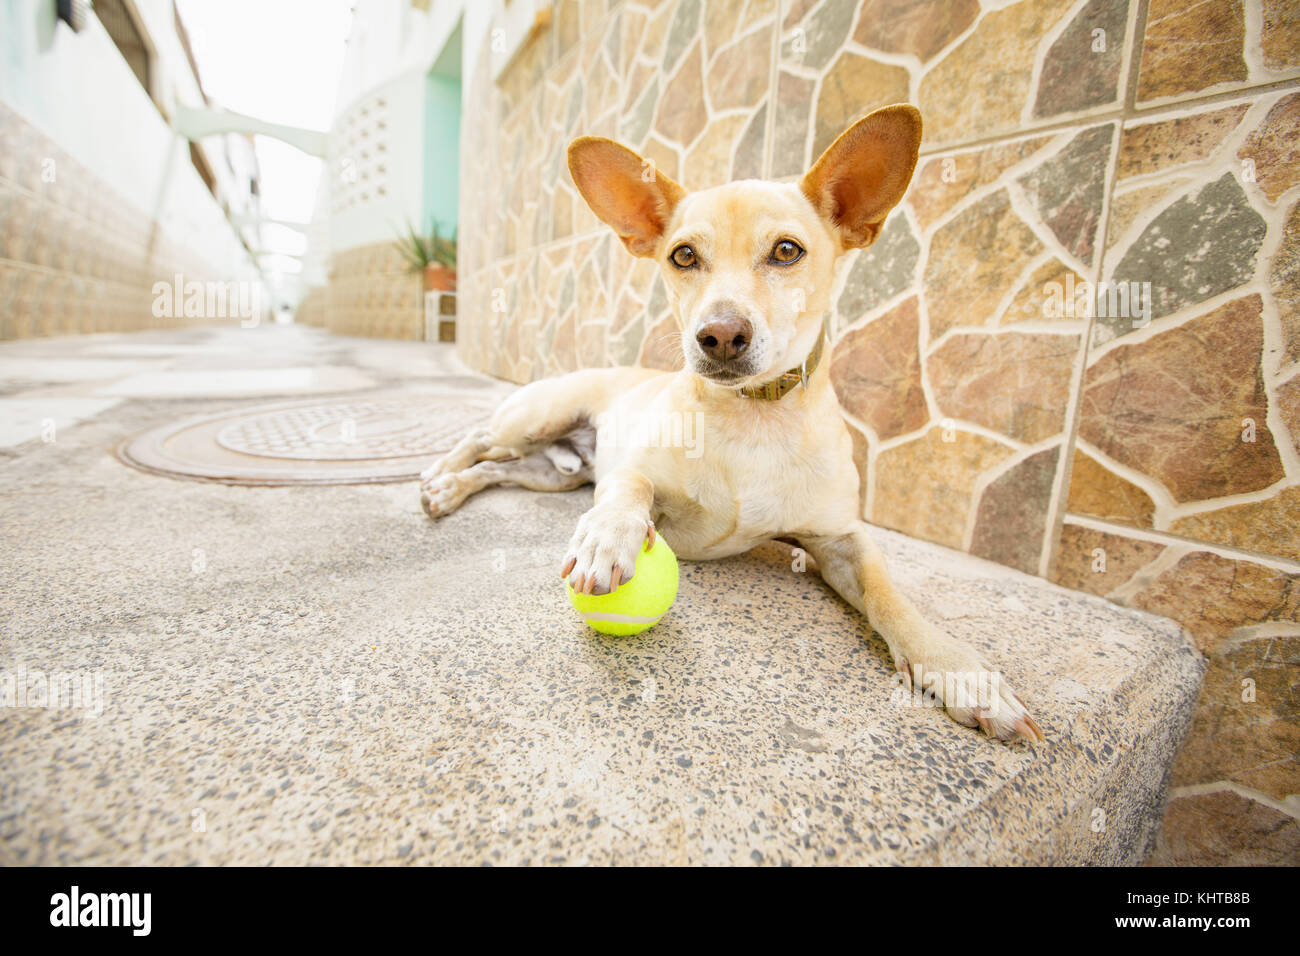 chihuahua dog waiting for owner to play with toy ball and go for a walk with leash outdoors - Stock Image